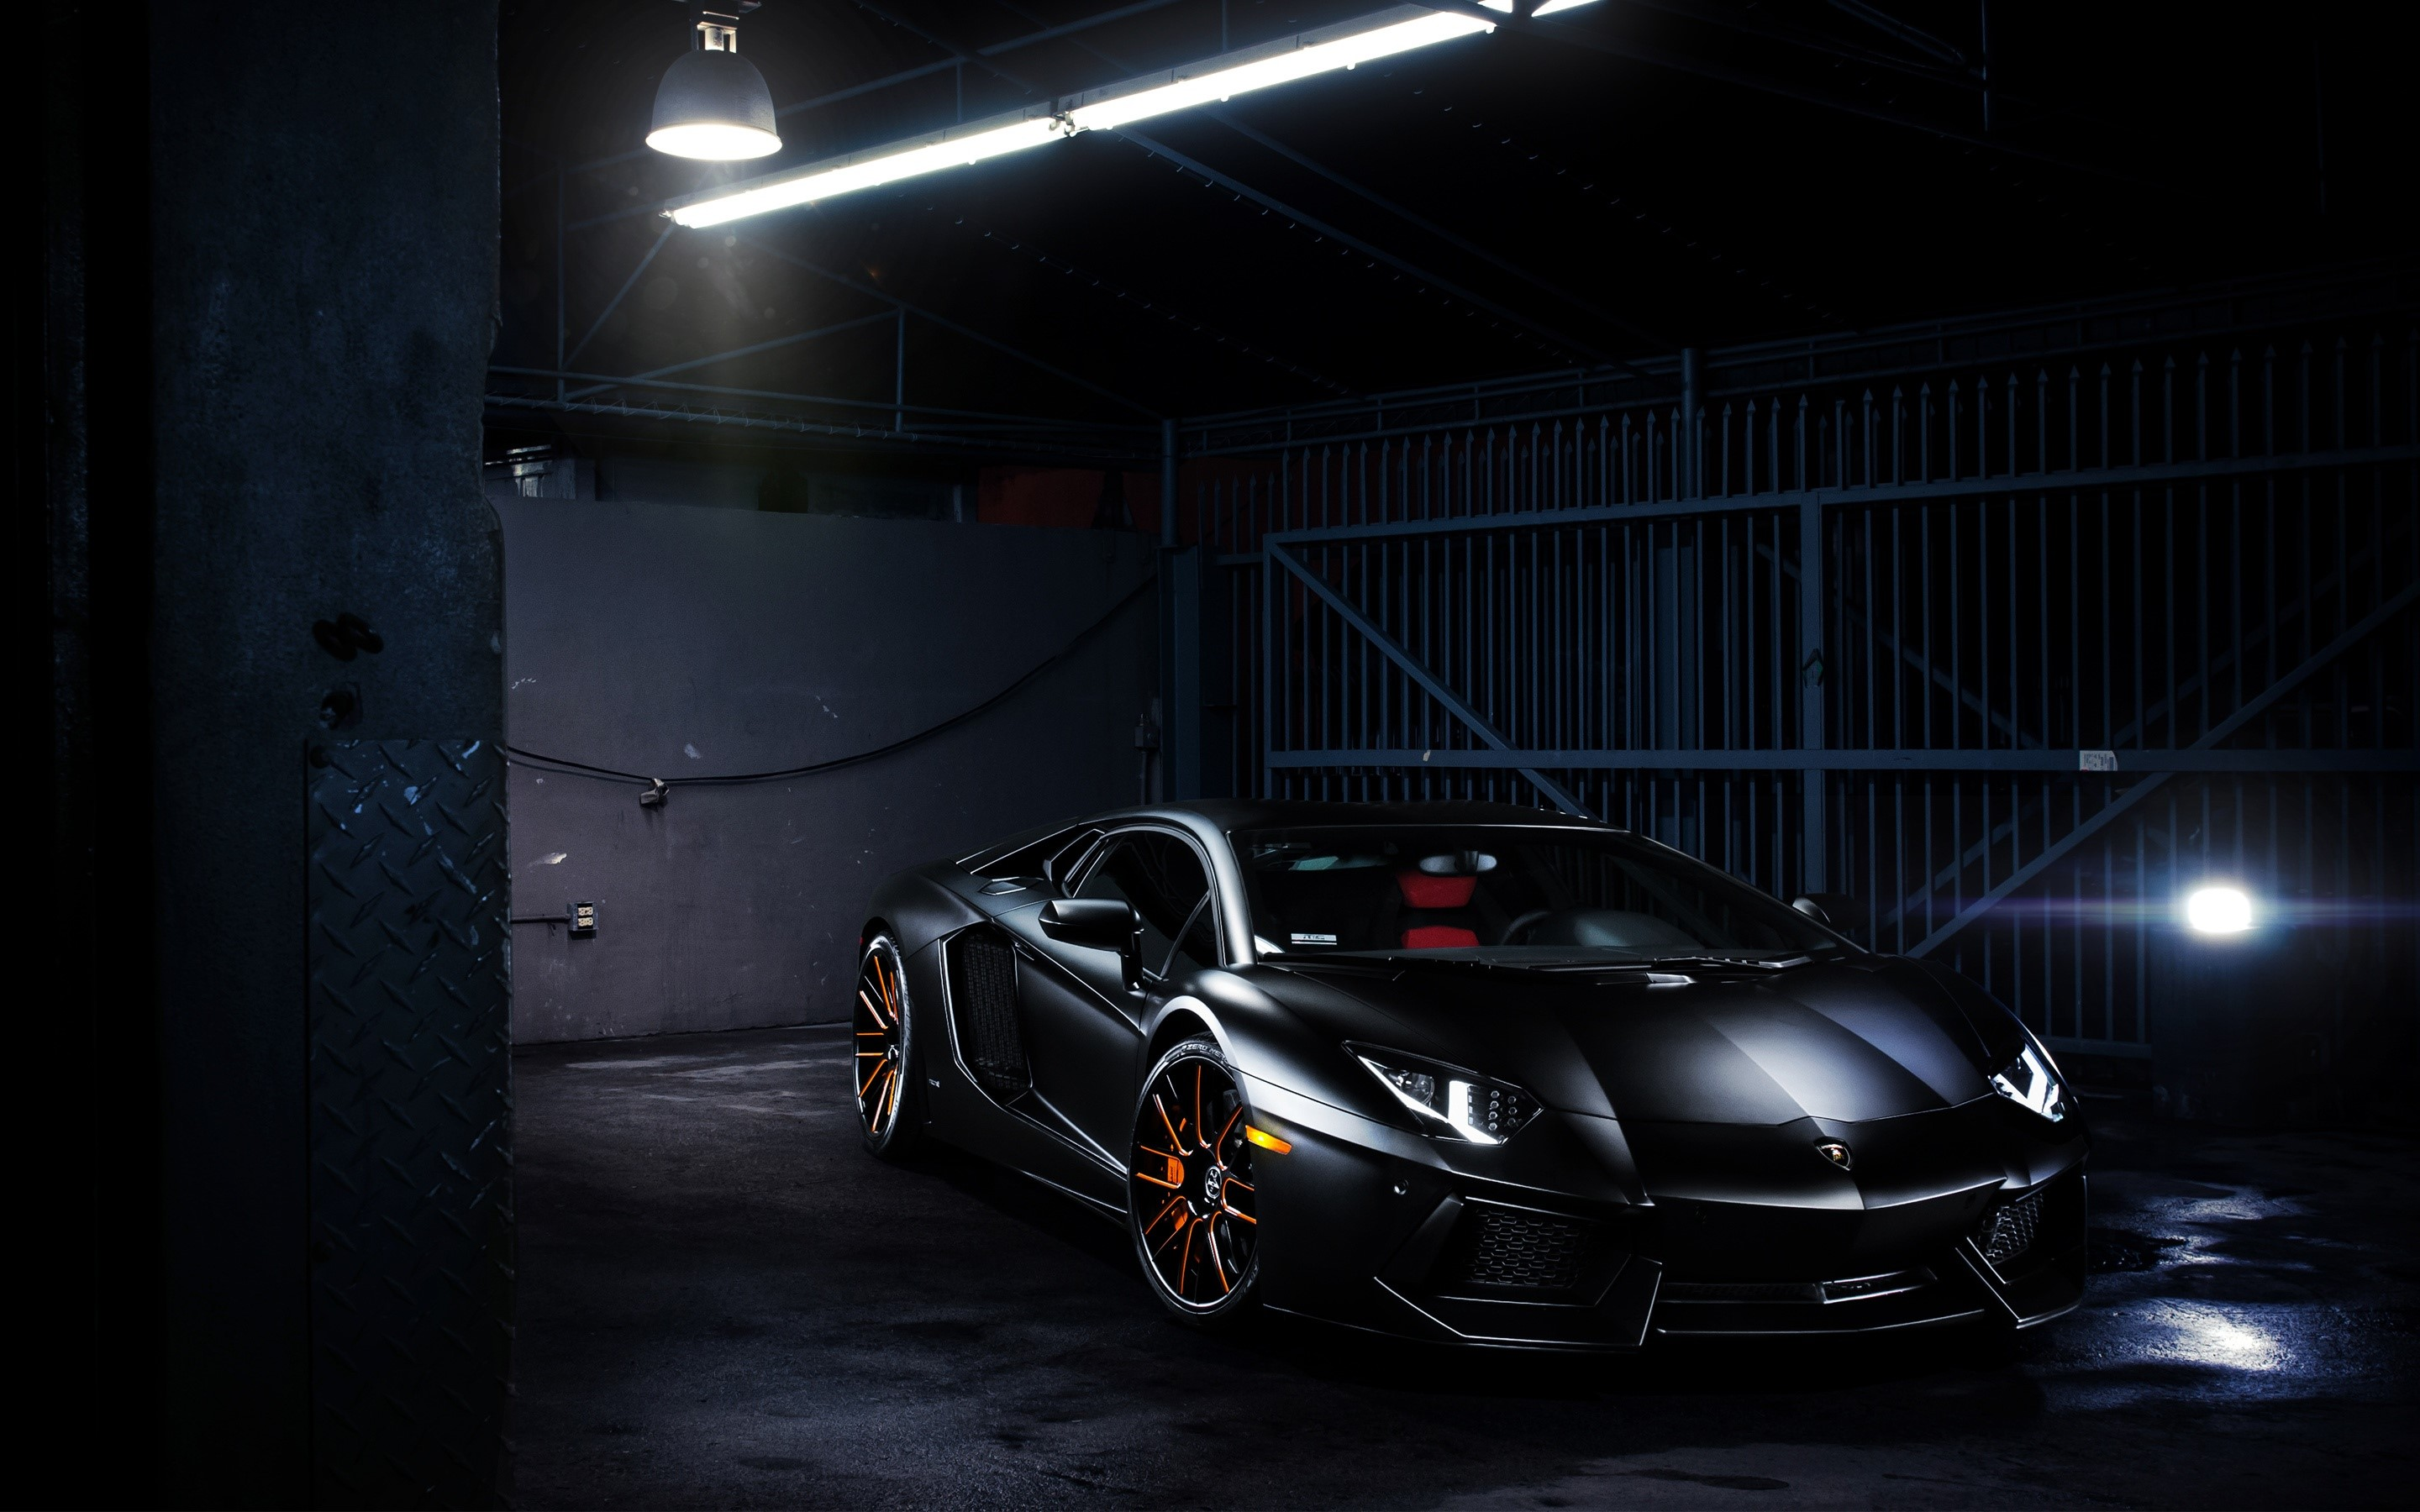 Wallpaper Vellano Wheels Lamborghini Aventador Images